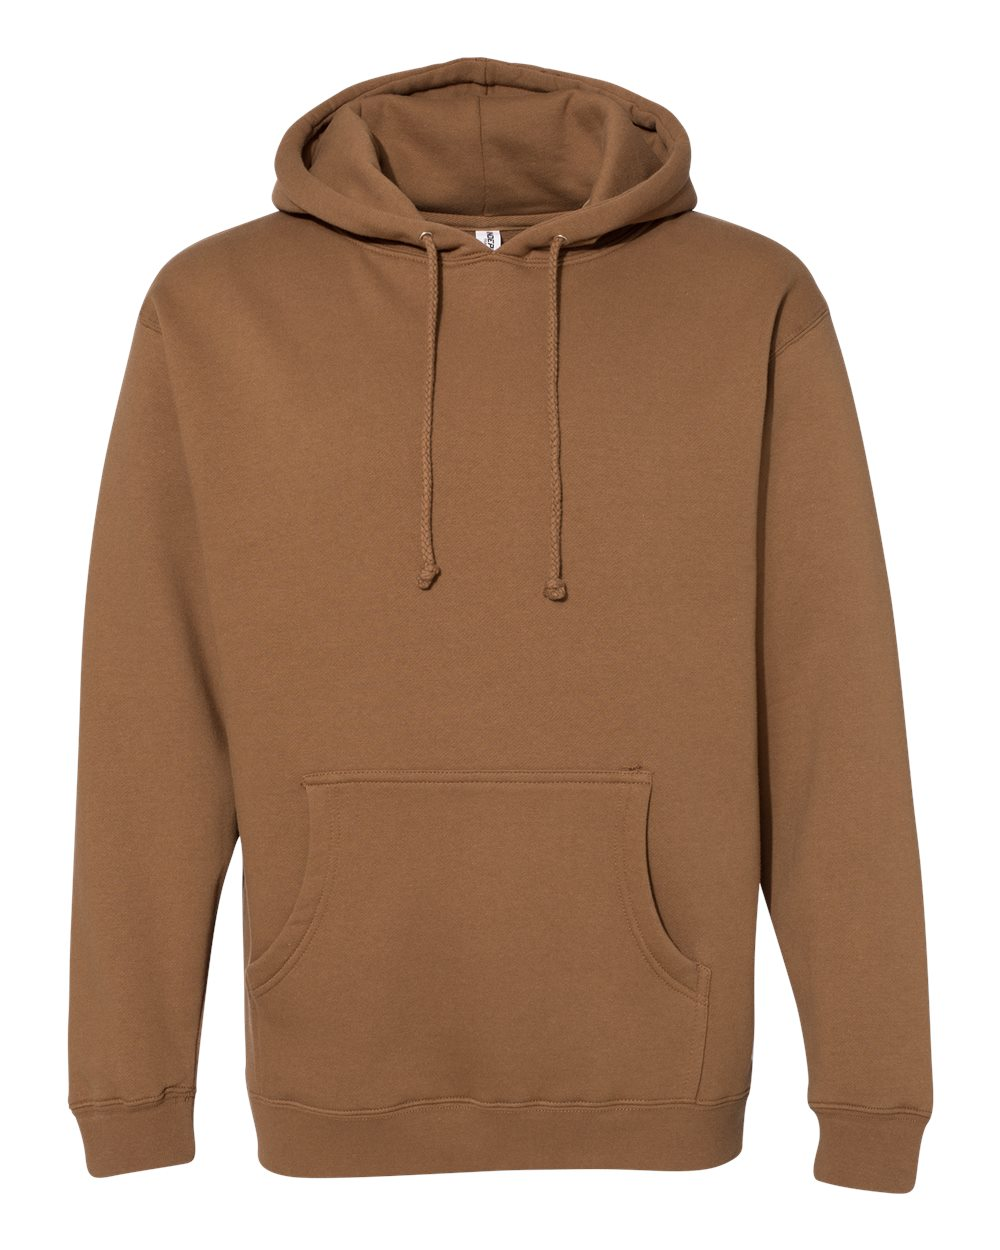 Independent-Trading-Co-Mens-Hooded-Pullover-Sweatshirt-IND4000-up-to-3XL miniature 66